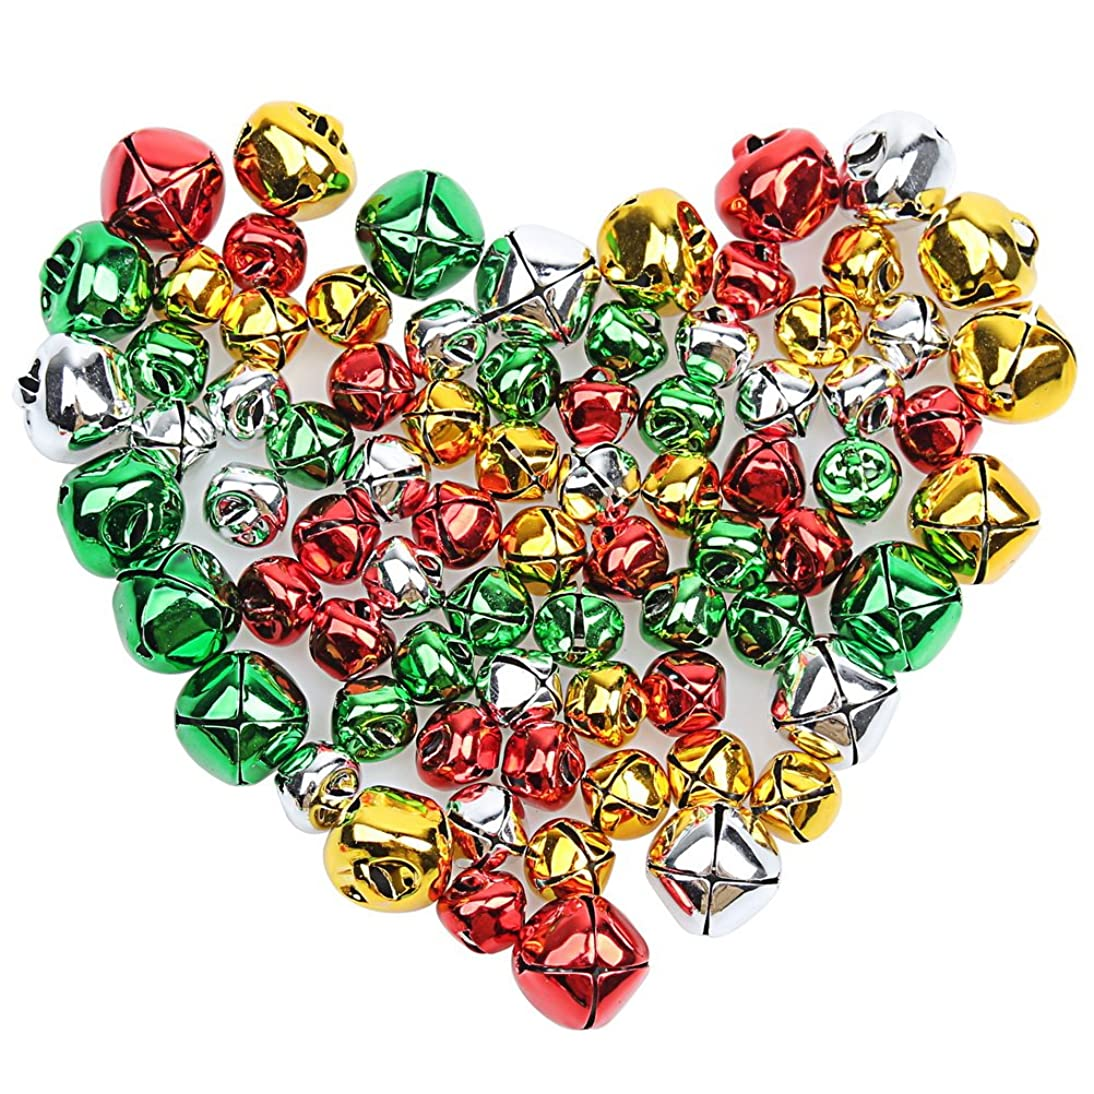 Pengxiaomei 200 PCS Craft Bells, Colorful Jingle Bells Christmas Bells, Jingle Bells for Crafts Party & Festival Decorations and Jewelry Making (0.4 Inch, 0.6 Inch)